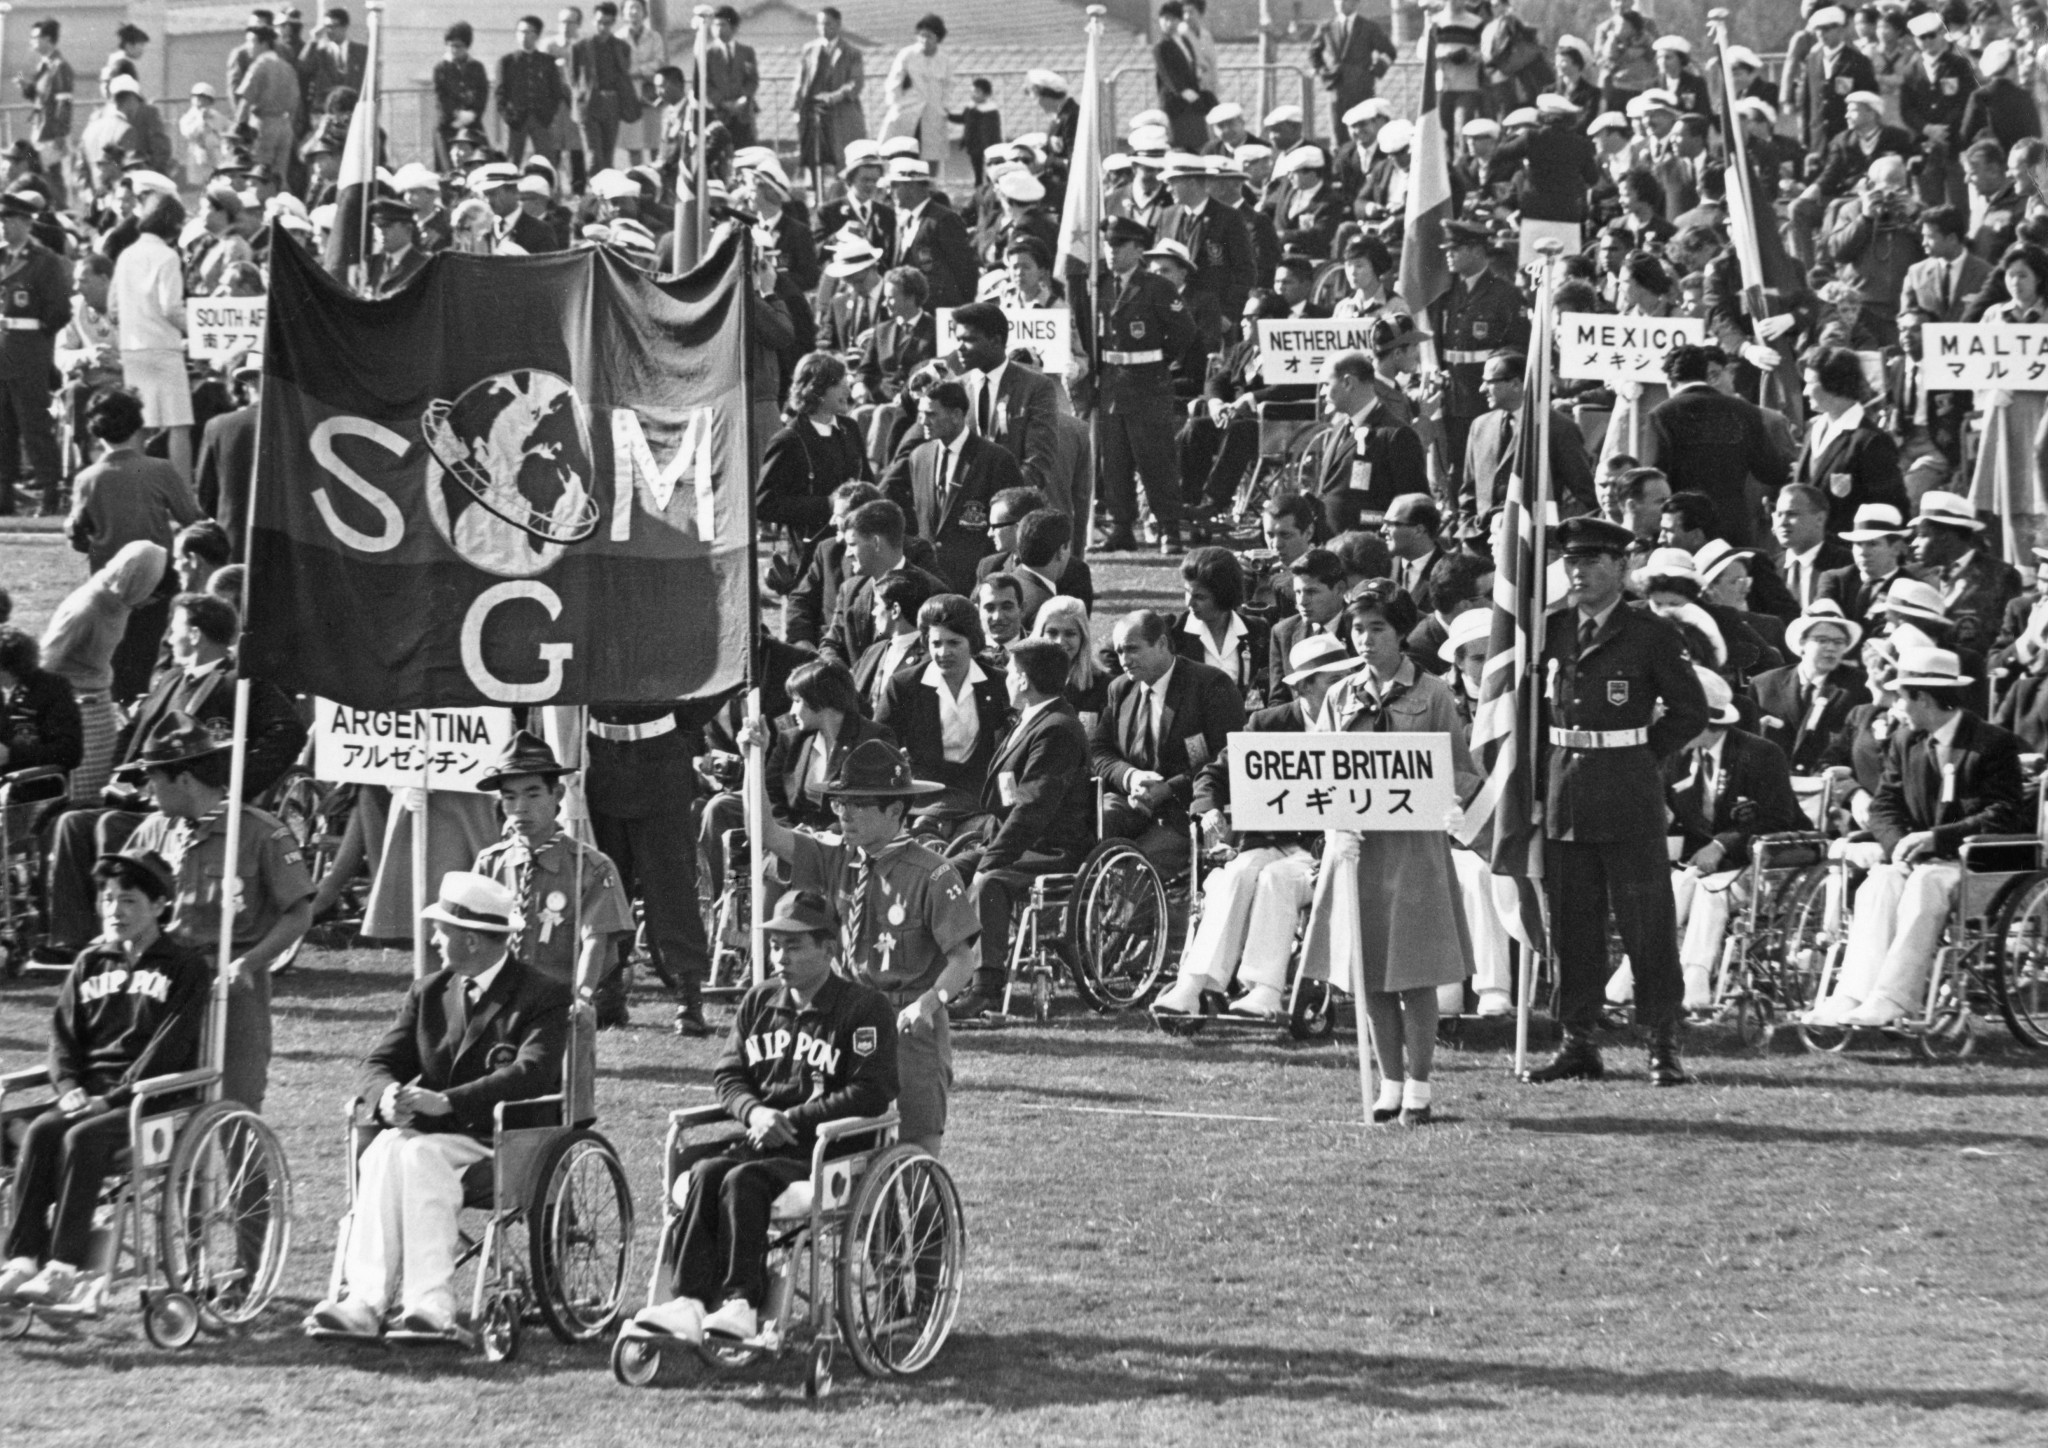 Participation in the 1964 Paralympic Games in Tokyo was seen as a means of rehabilitation for disabled people in Japan ©Getty Images